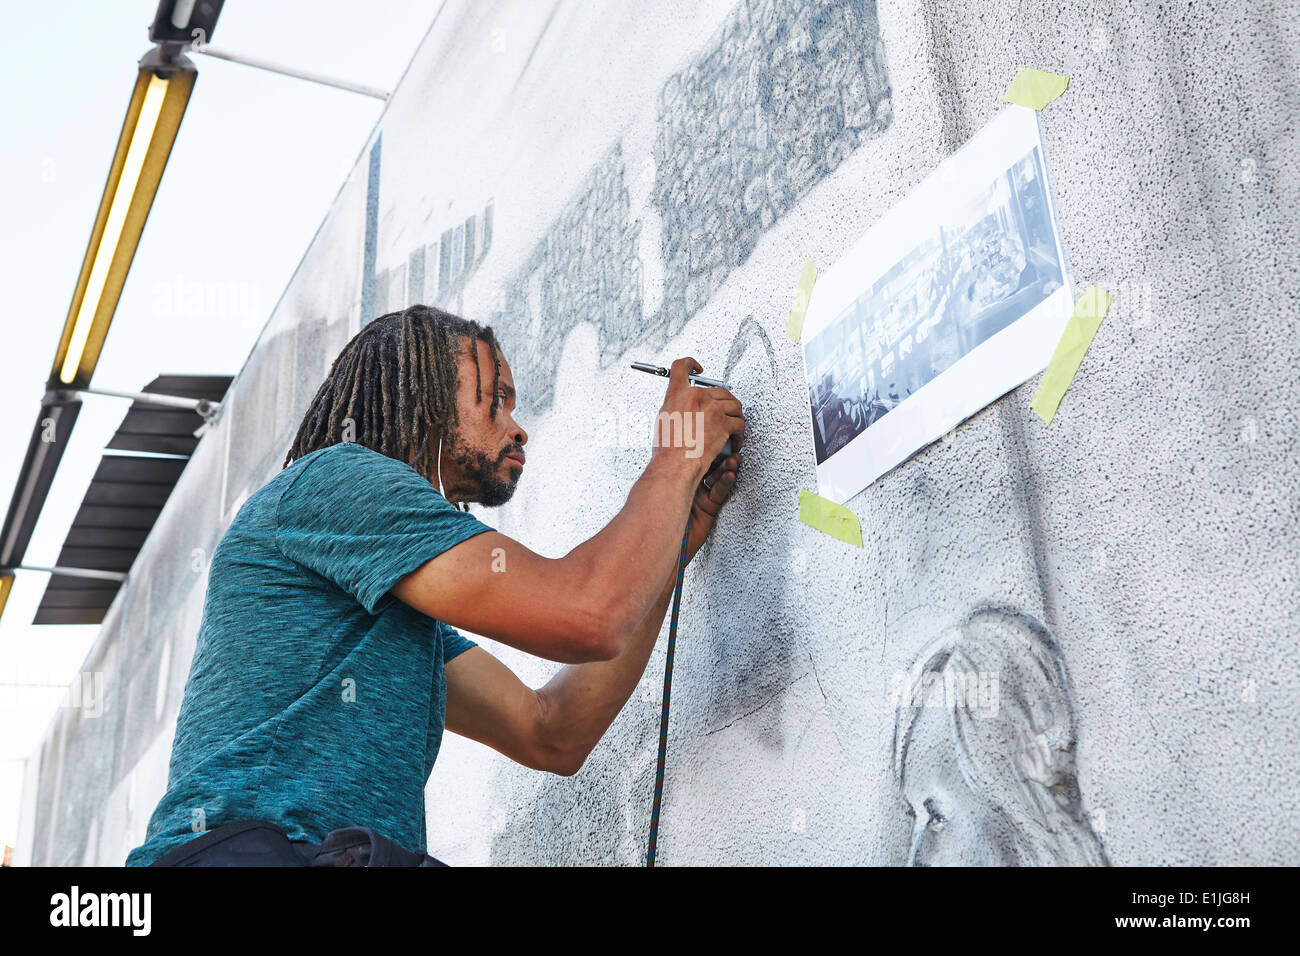 Male african american airbrush artist painting mural - Stock Image